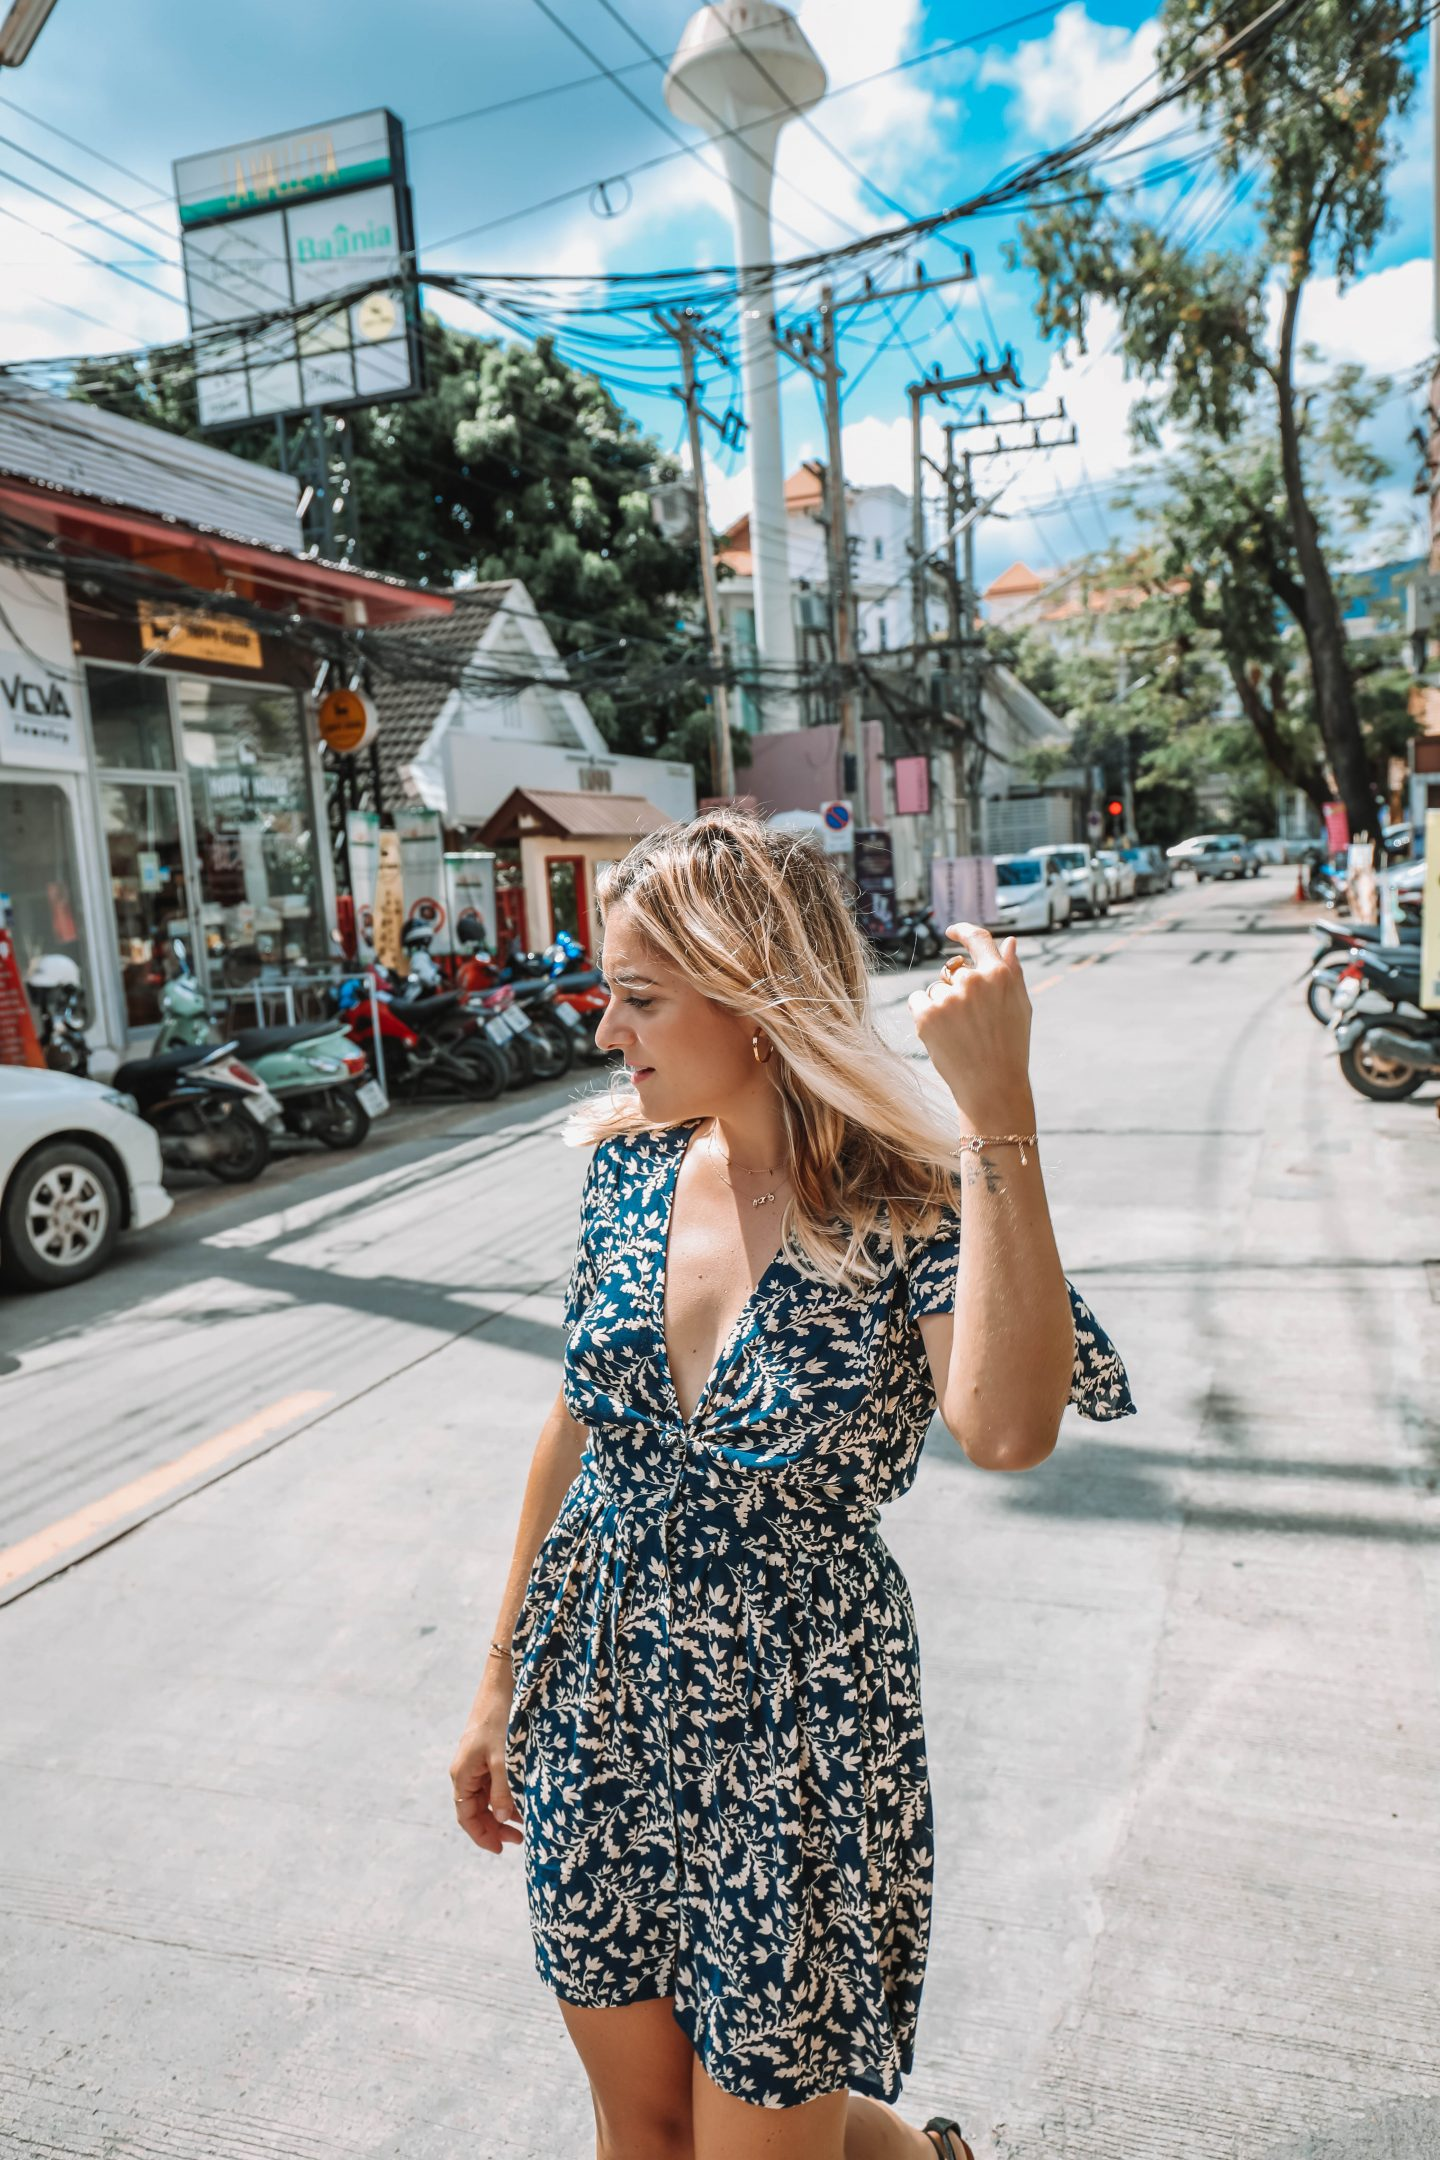 Chiang Mai Thailande - Blondie Baby blog mode et voyages